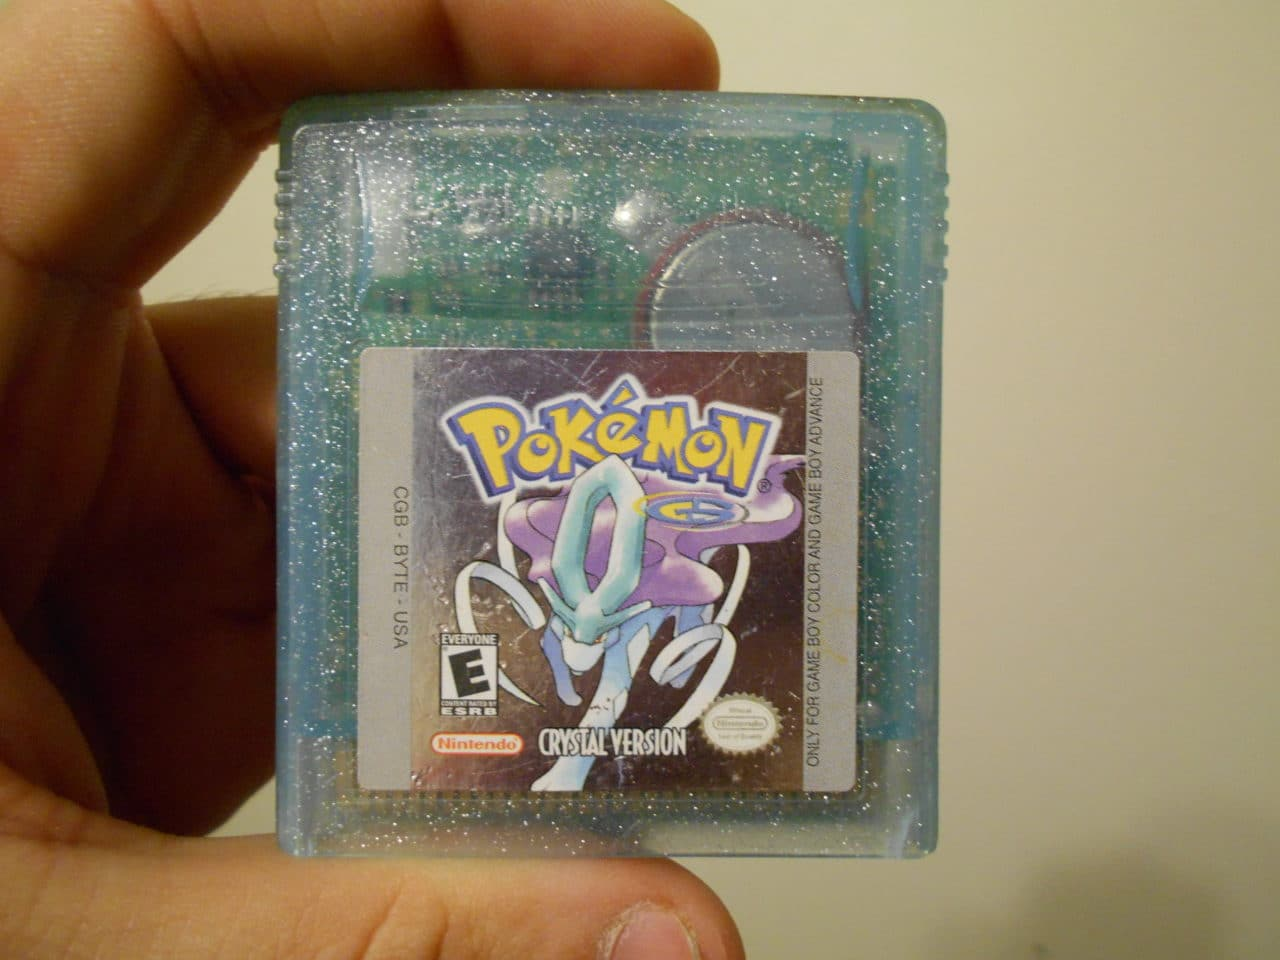 Crystal Version was my very first Pokémon game, starting me on my Pokémon journey over 15 years ago.